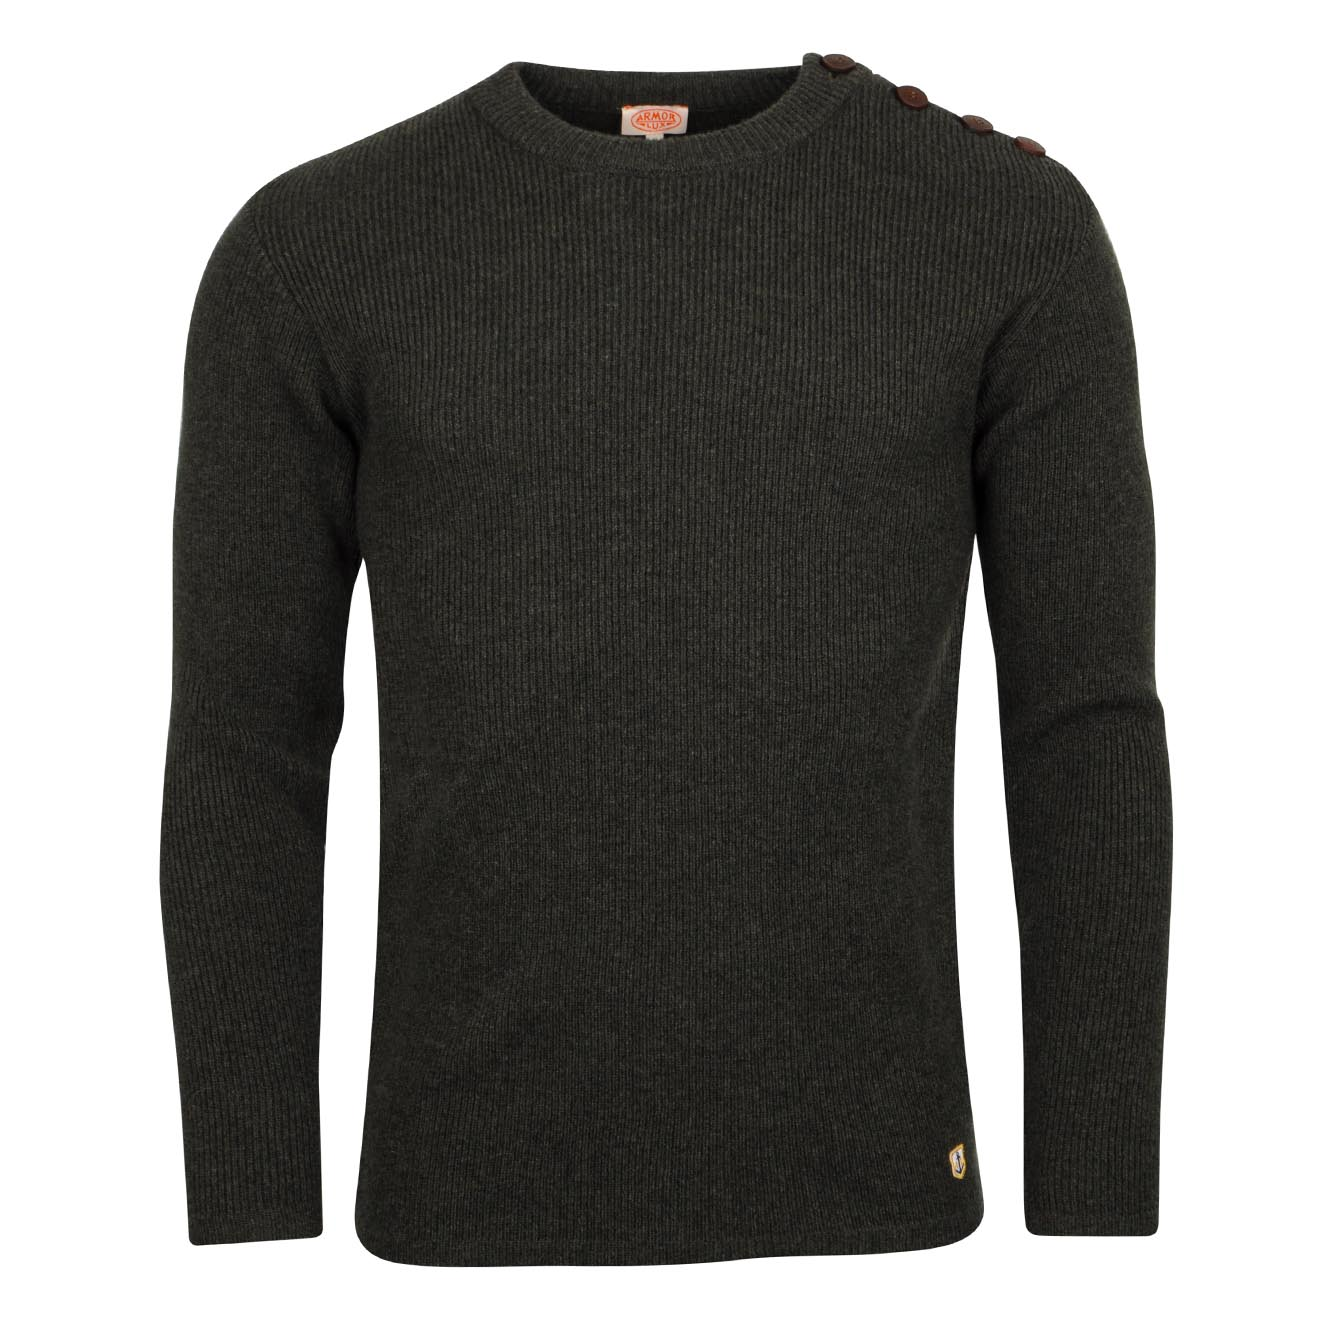 Armor Lux Fishermans Lambswool Knit Aquilla Chine 3